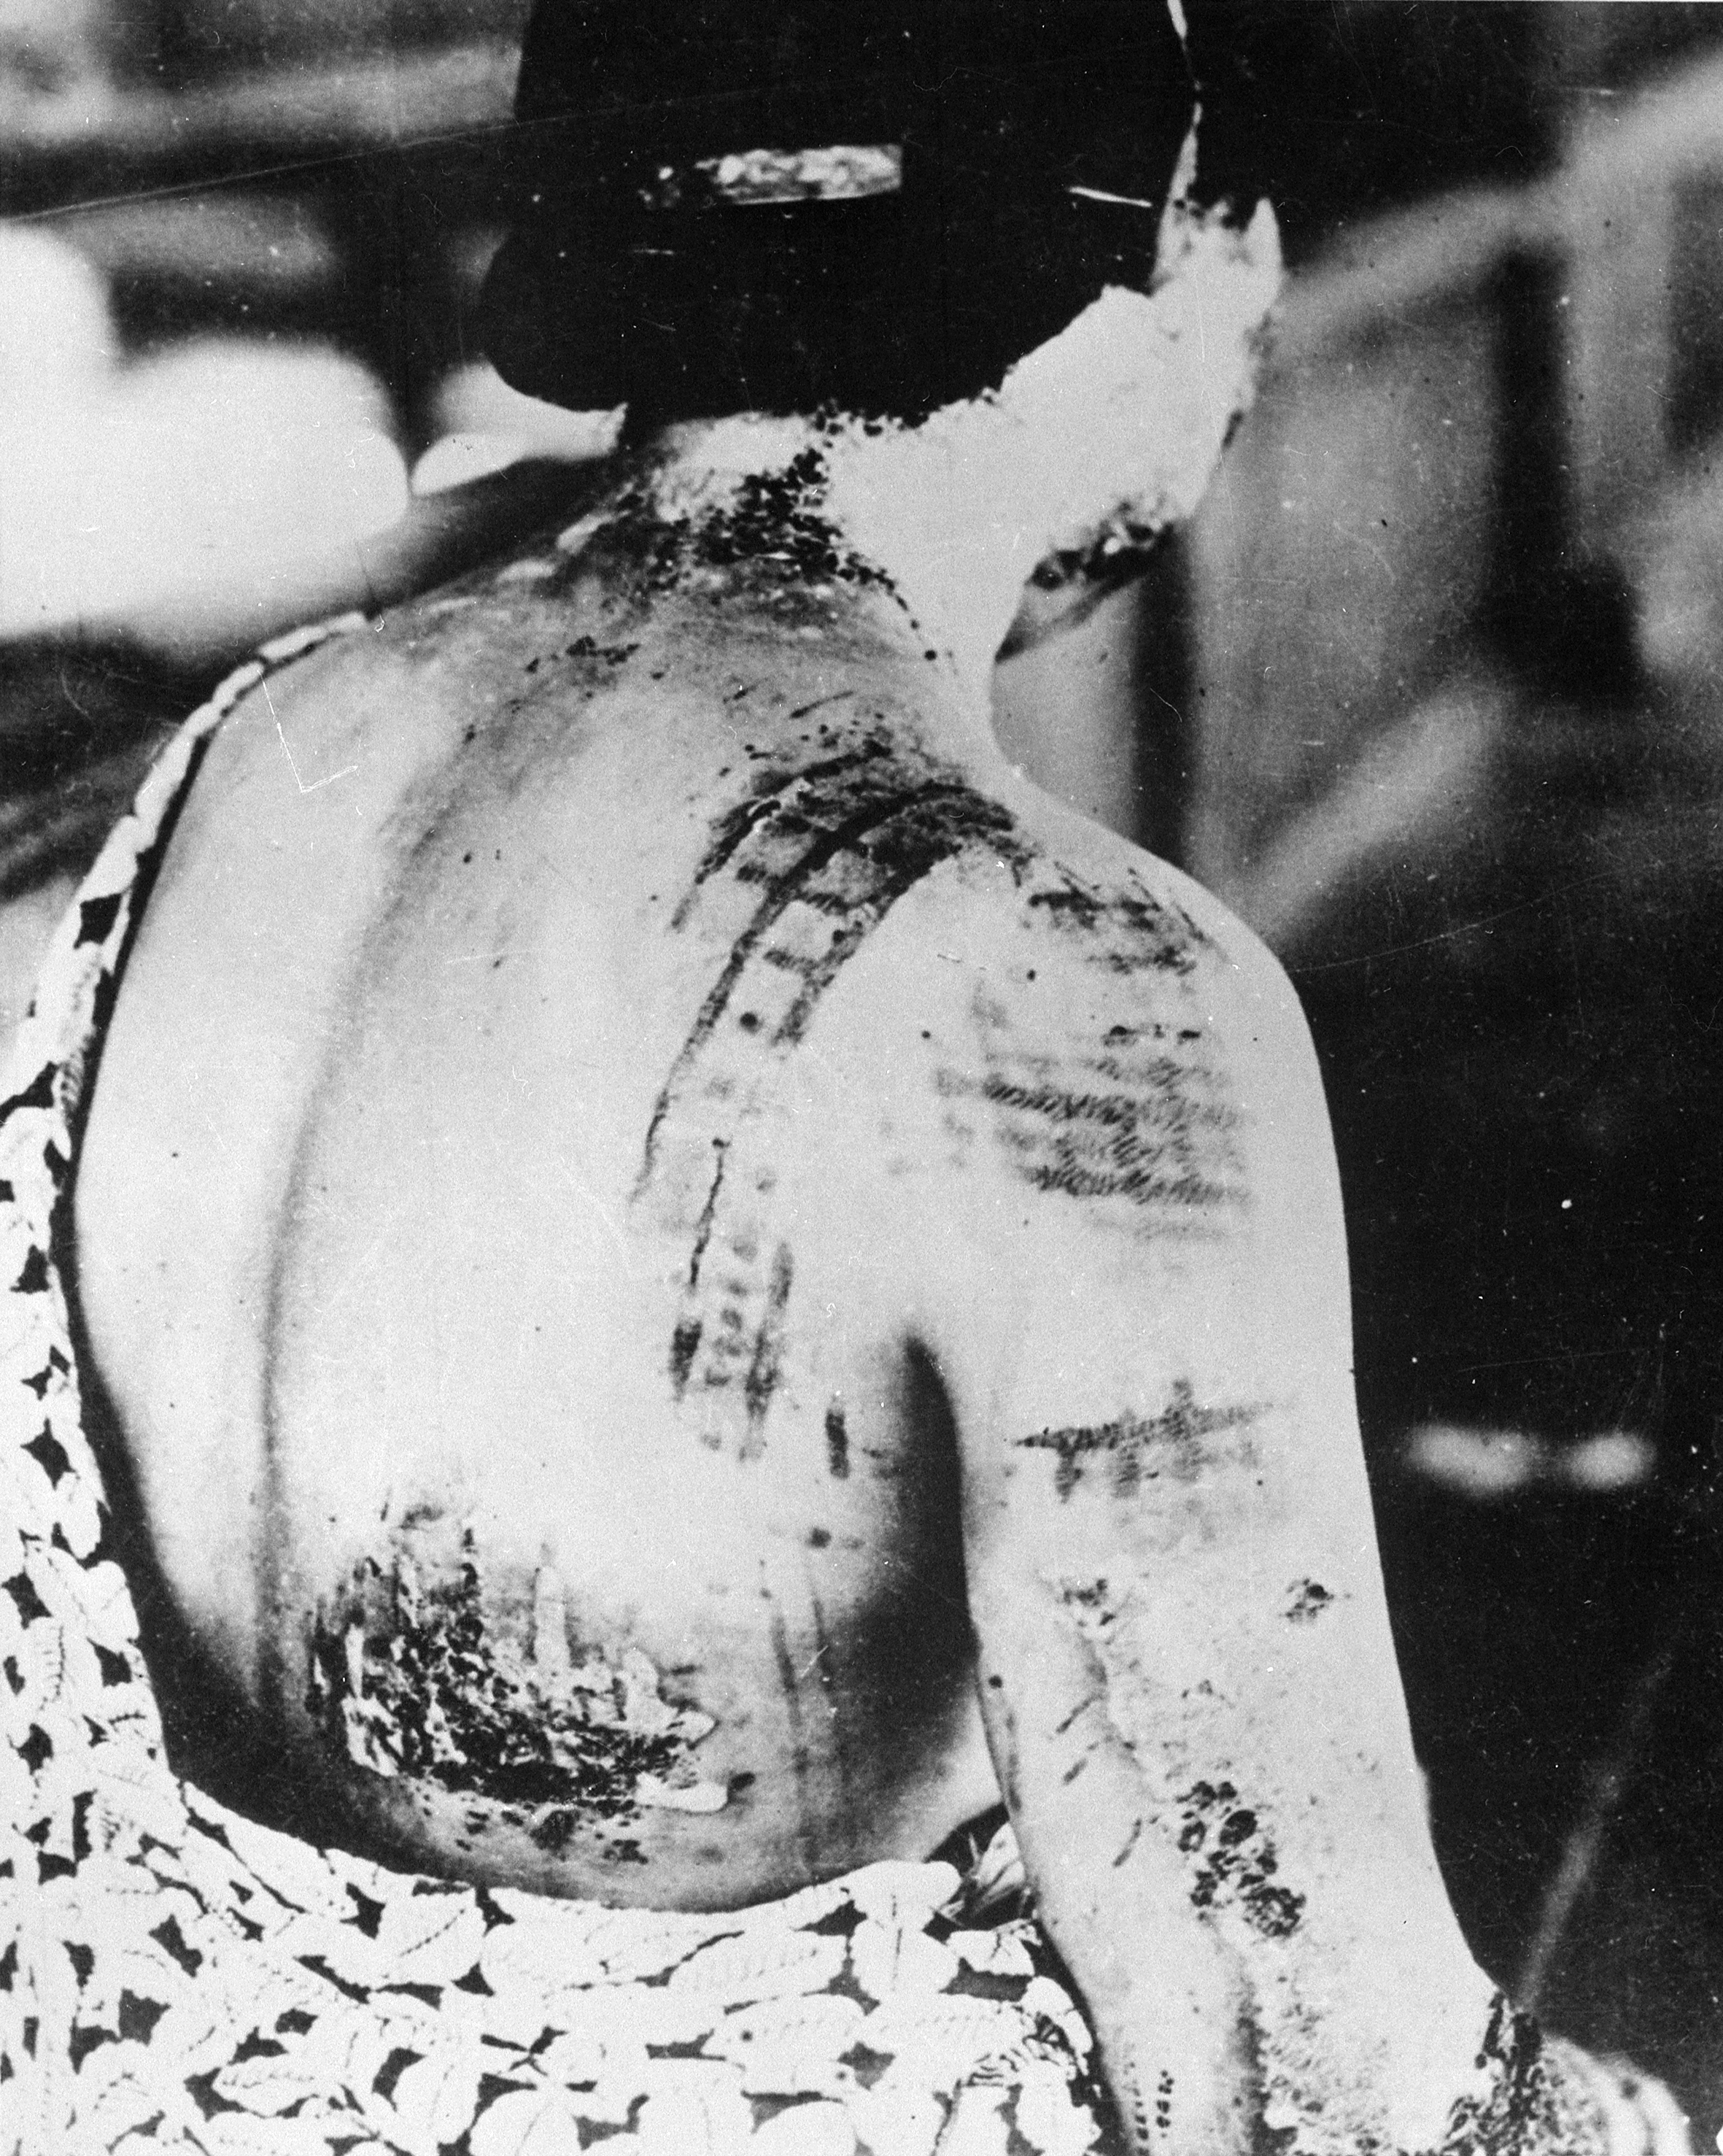 Women after Hiroshima nuclear attack with Radiation burns.